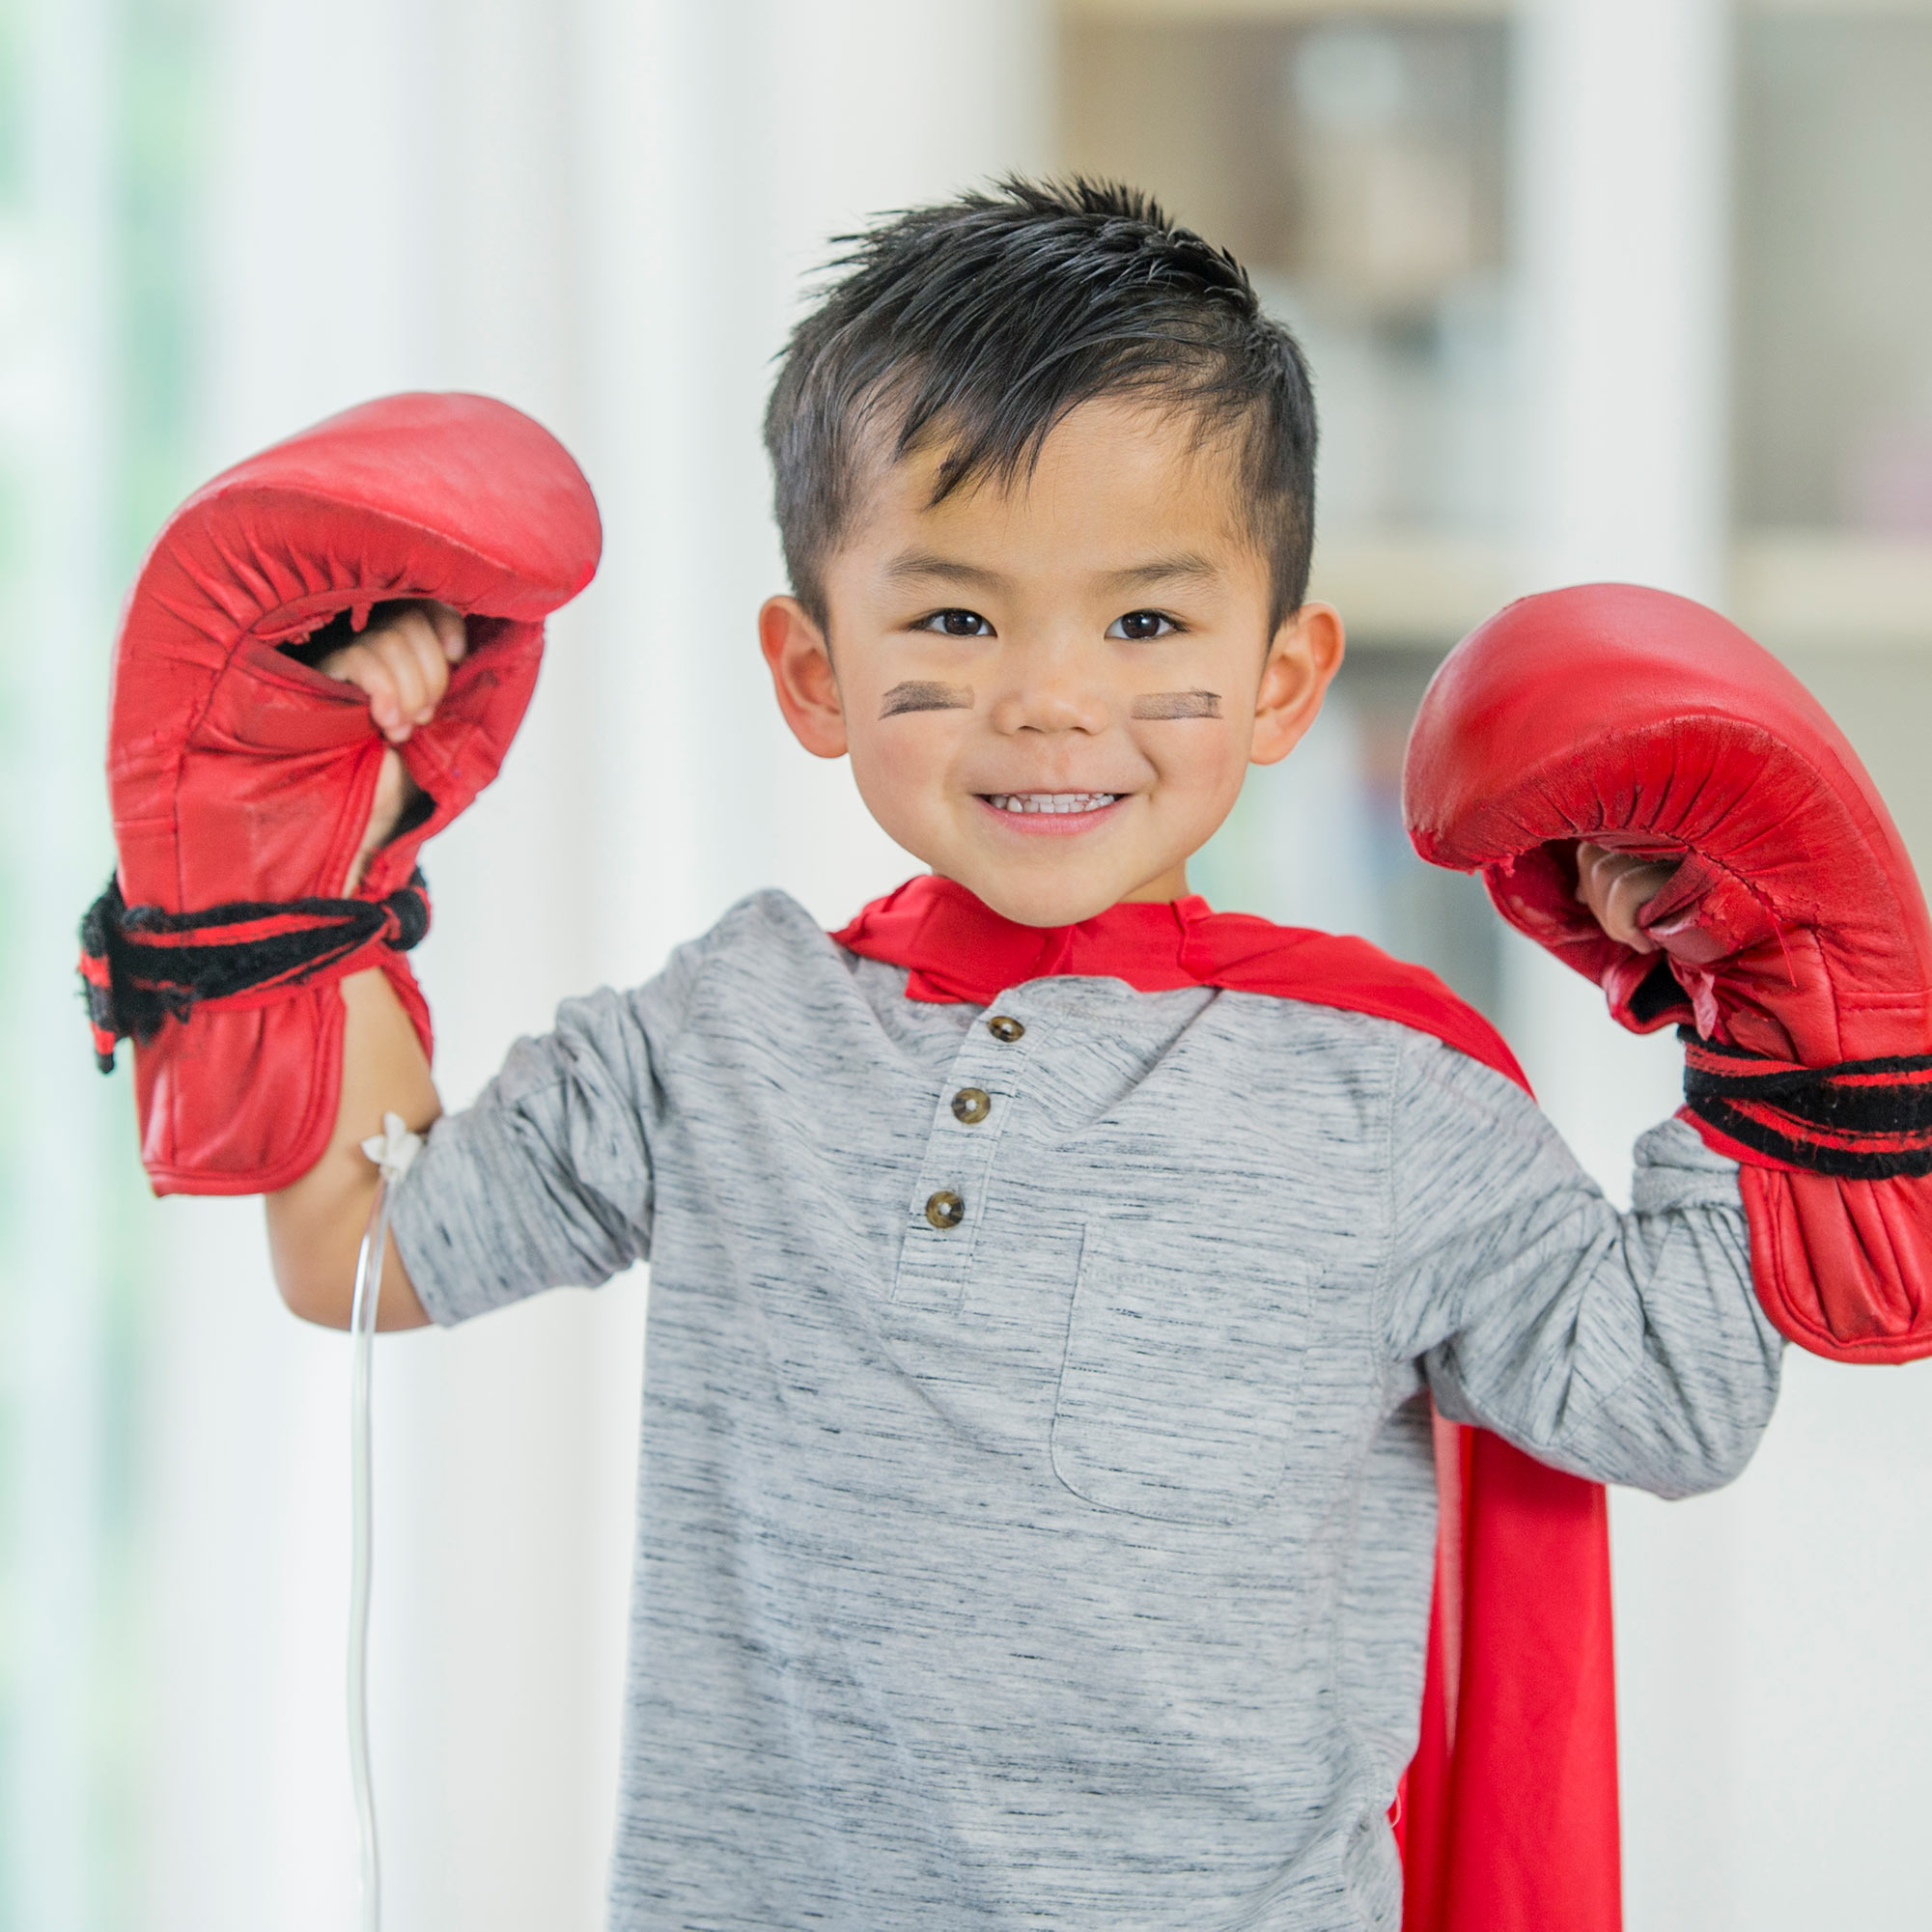 A young boy smiles while receiving an infusion treatment while wearing boxing gloves, a cape, and face paint.